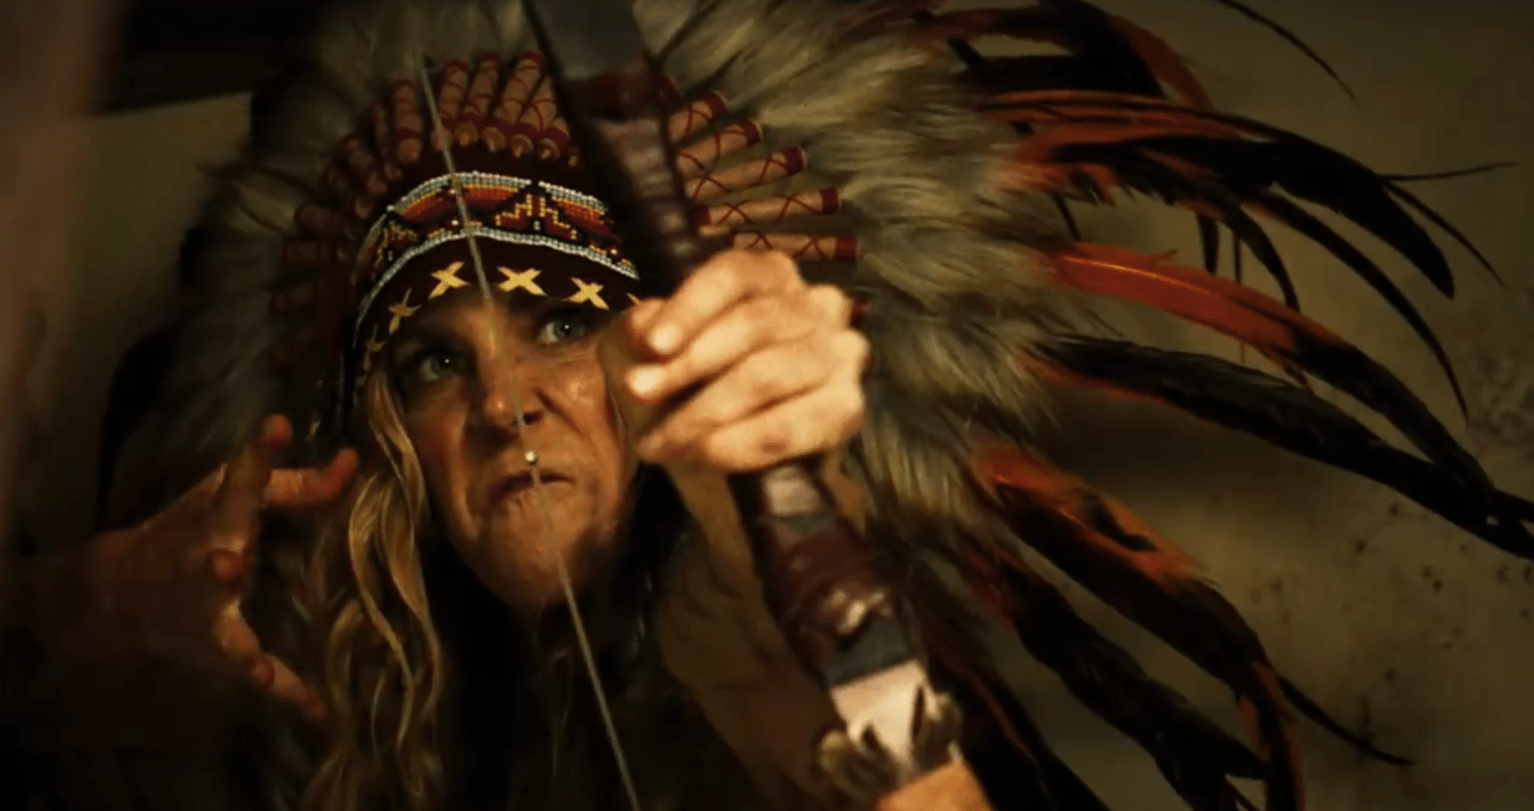 Full Trailer for Rob Zombie's '3 from Hell' Brings the Firefly Family Back to Life With 2 Minutes of Footage! - Bloody Disgusting